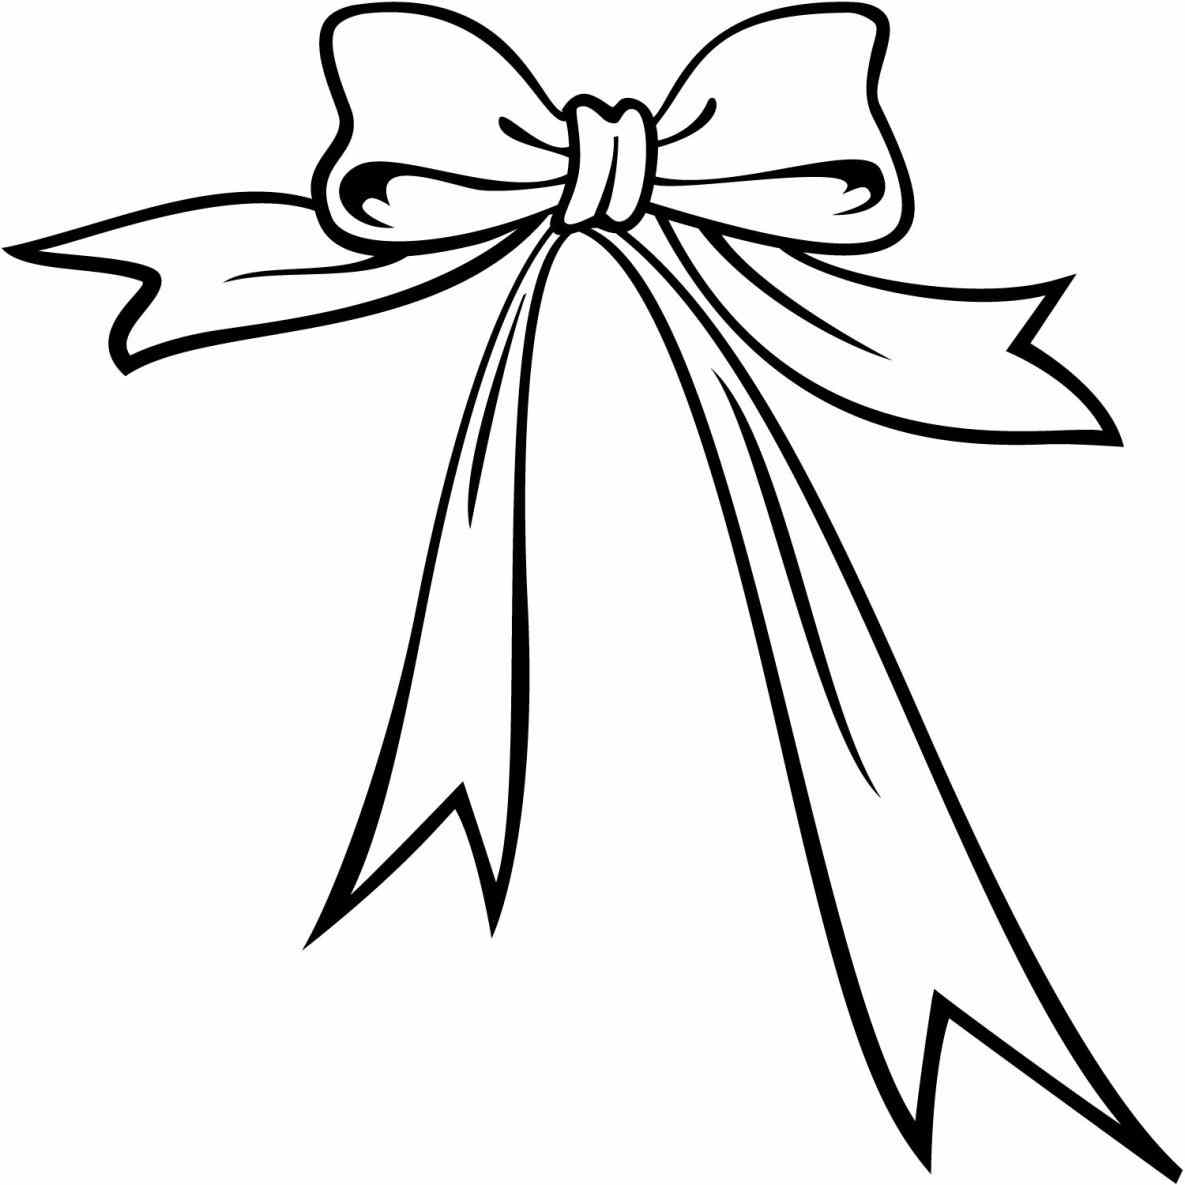 1185x1185 Cheer Bows Drawings